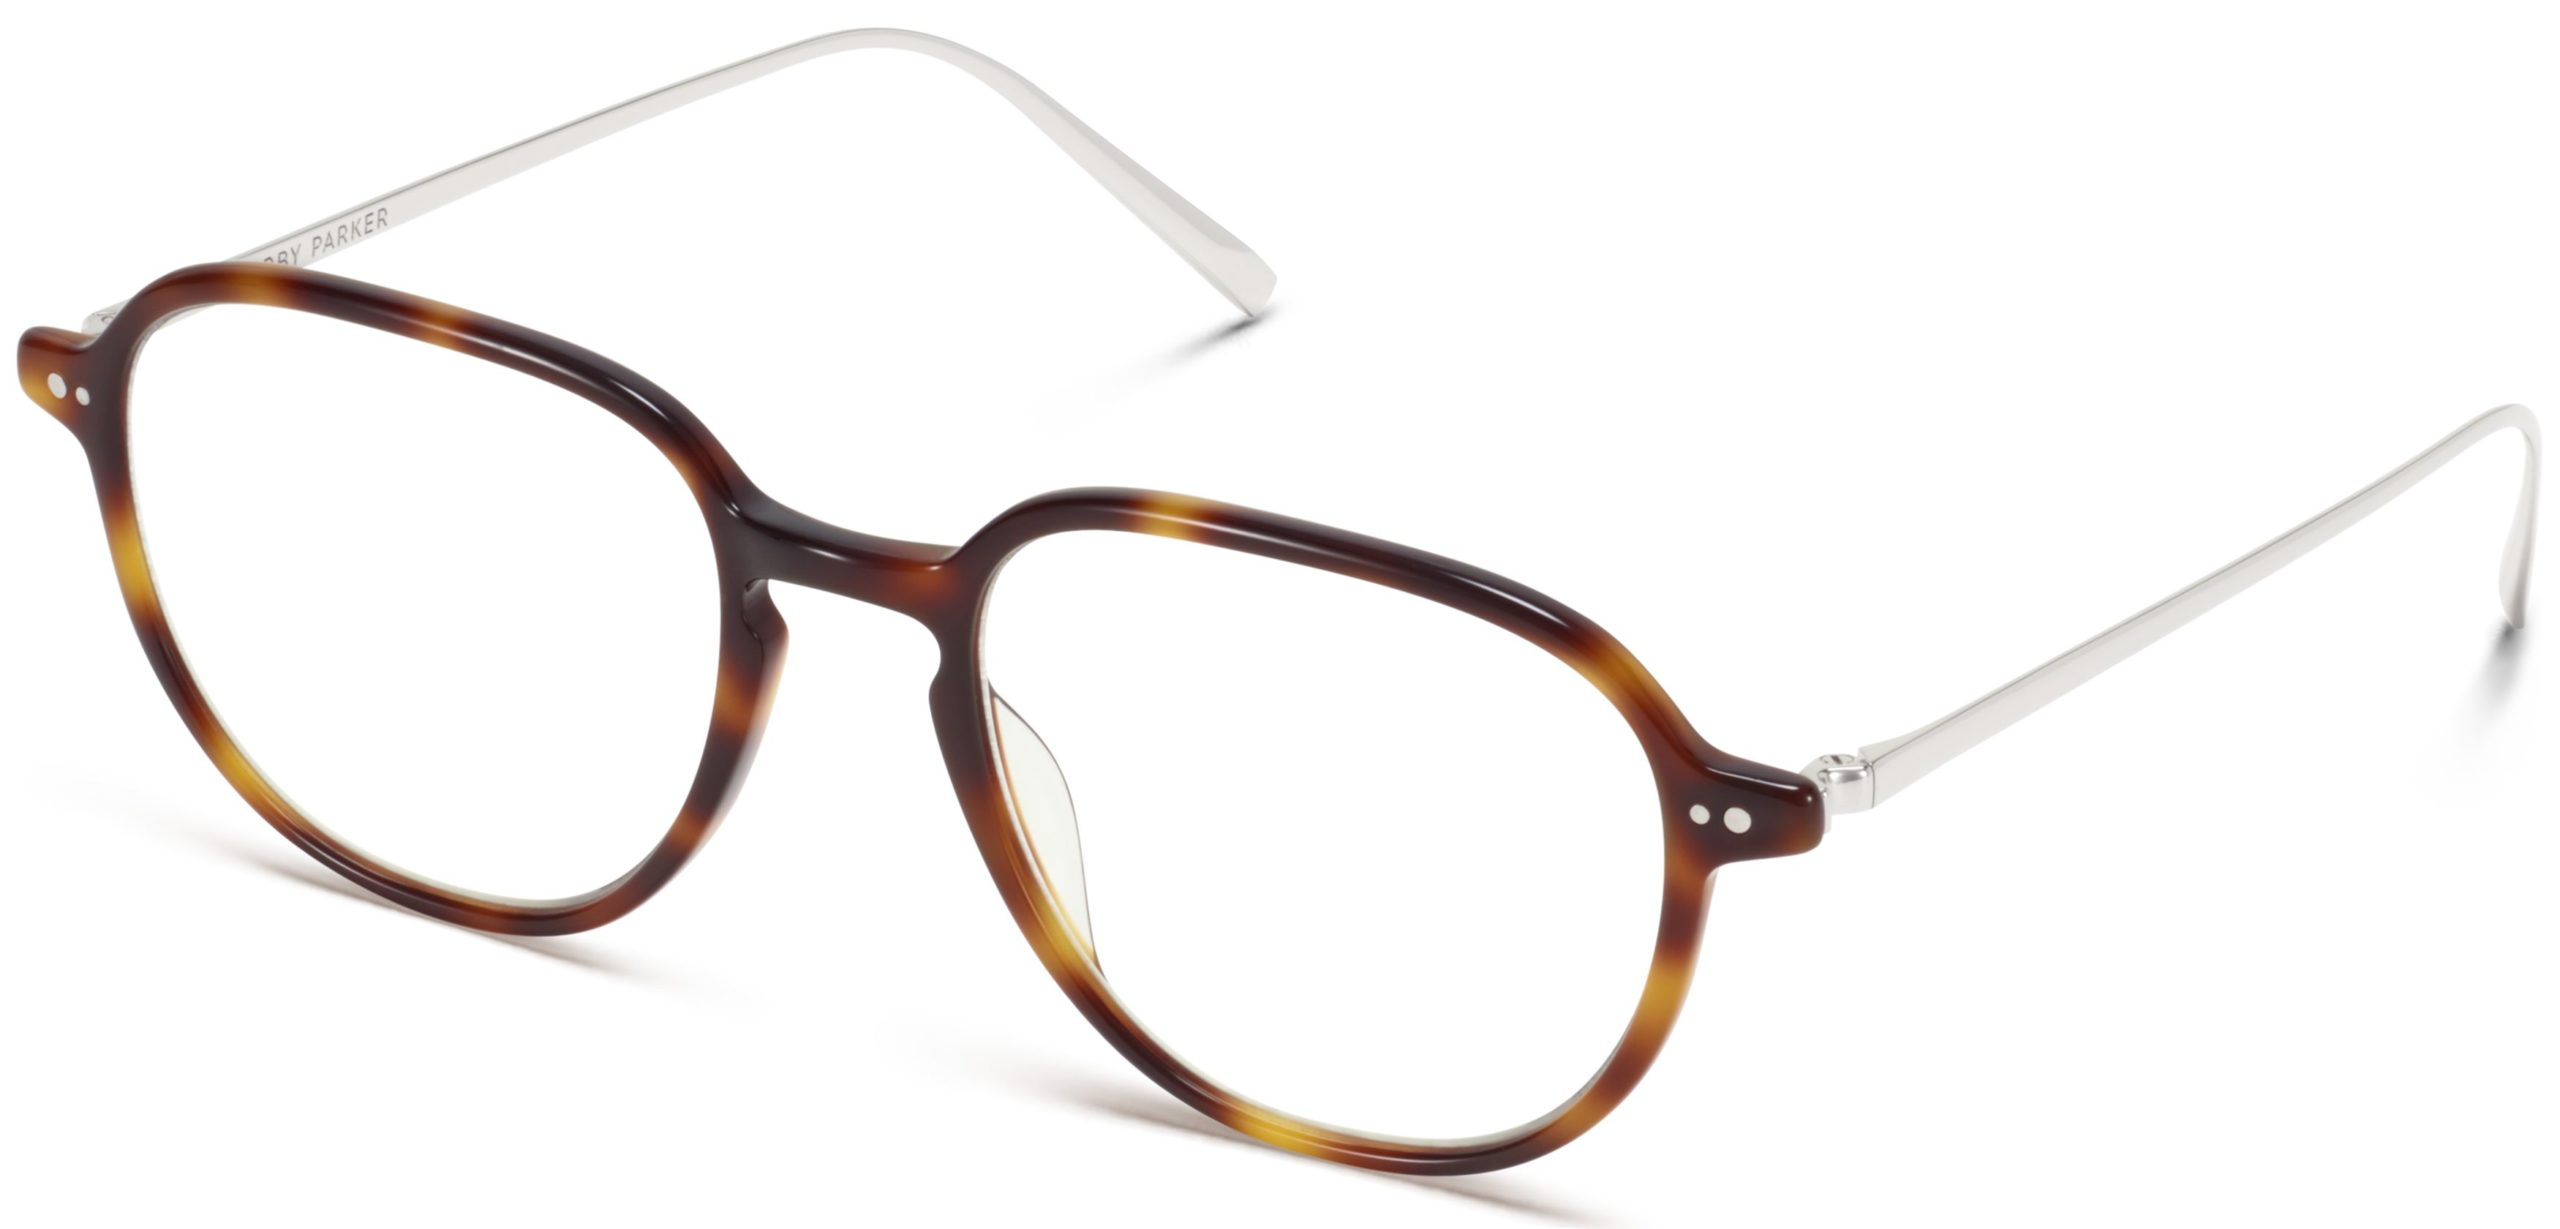 Angle View Image of Beasley Eyeglasses Collection, by Warby Parker Brand, in Woodgrain Tortoise with Polished Silver Color